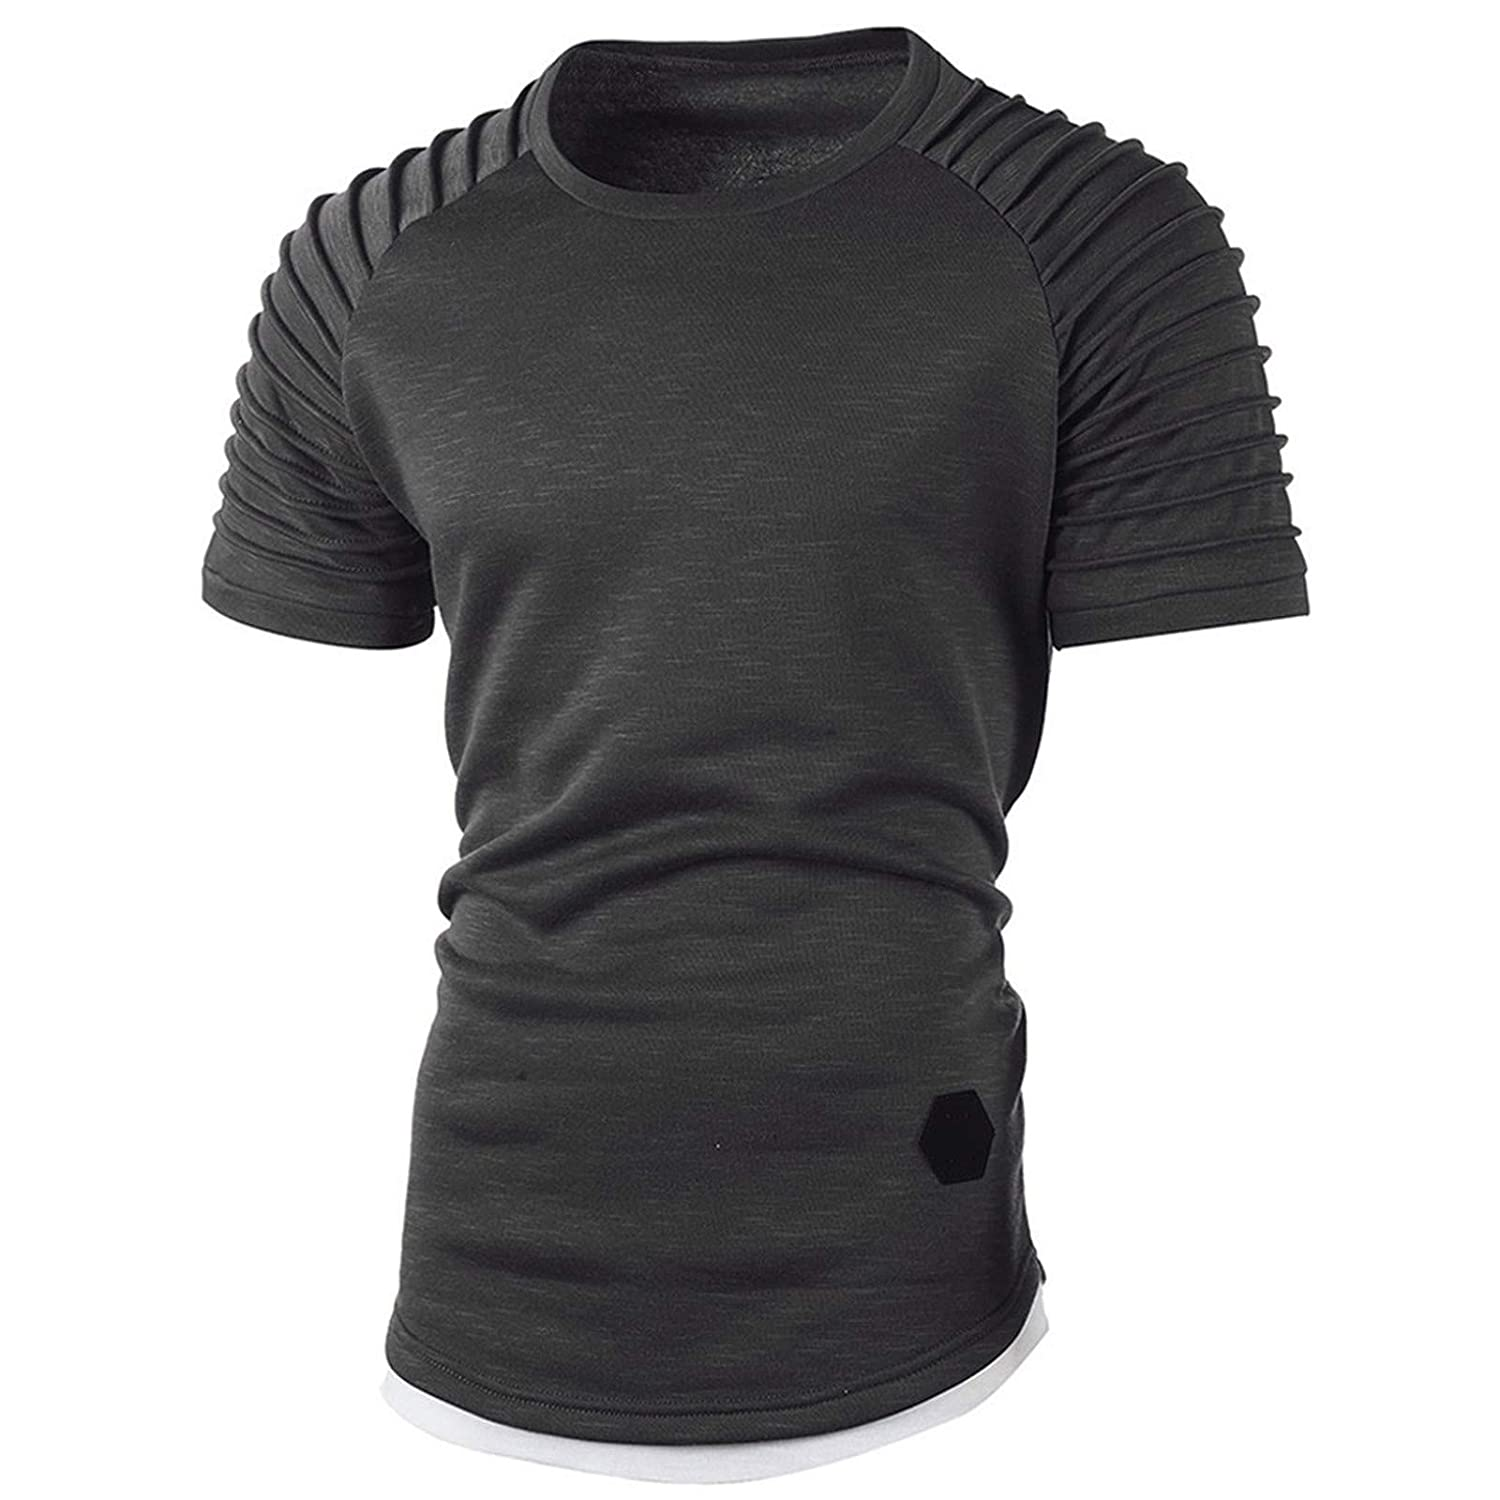 BAOHOKE Round Neck Fake Two-Piece Solid Color Striped Pleated Raglan Sleeve Short-Sleeved t-Shirt for Men